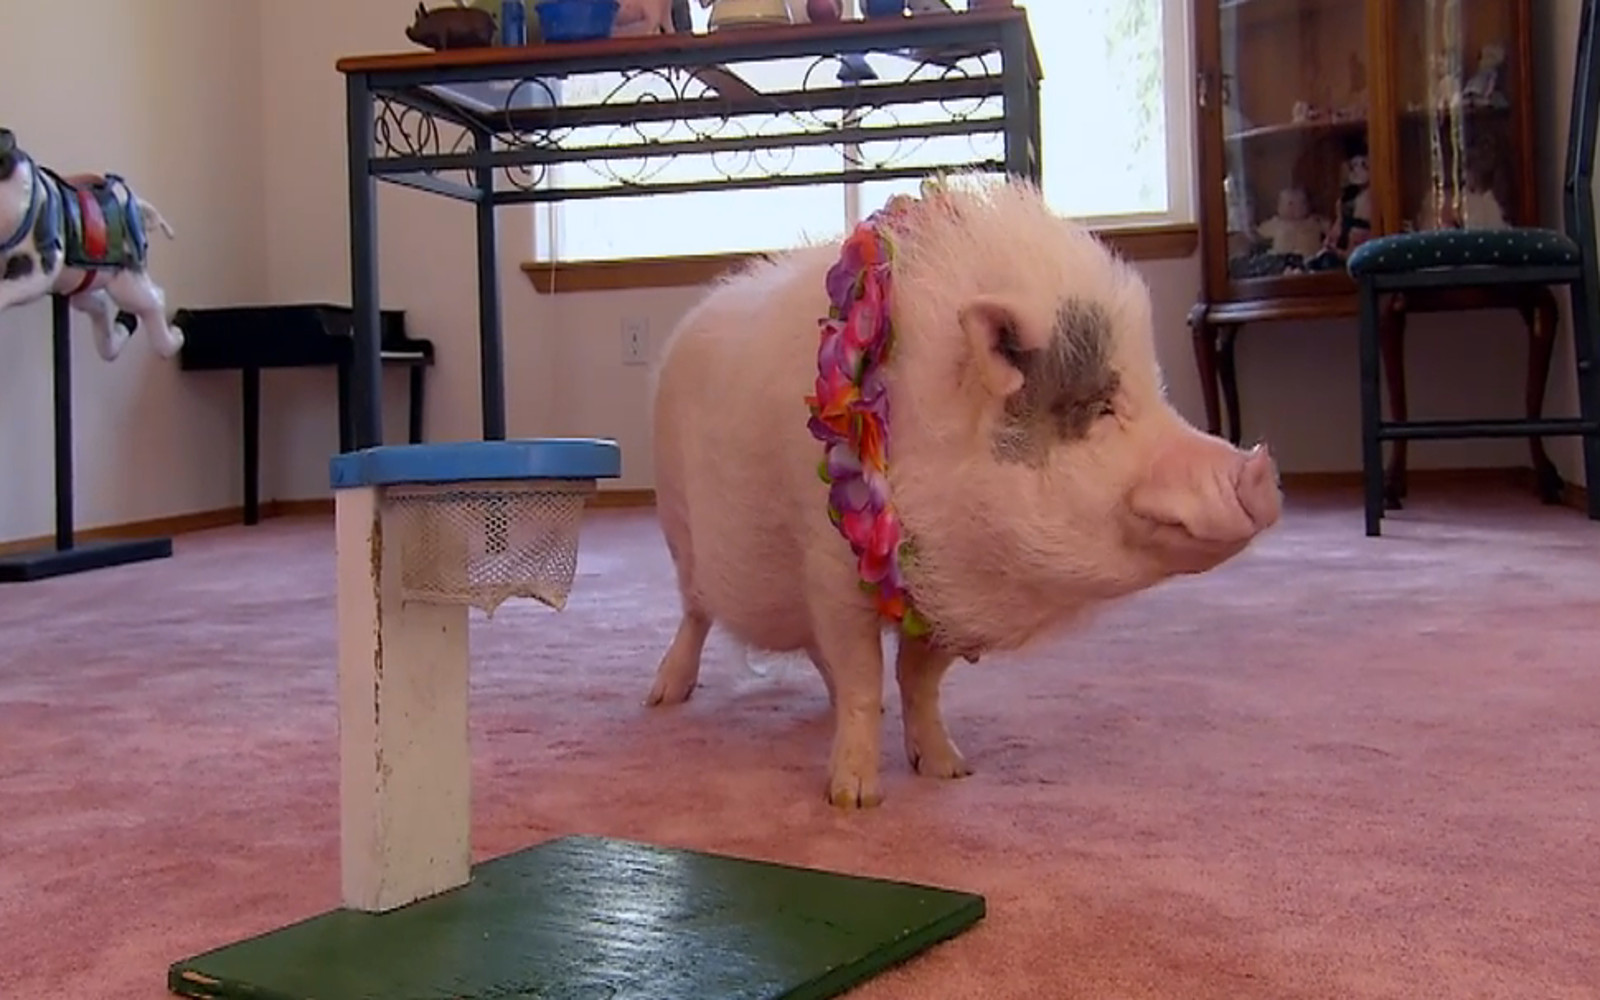 Nelly The Show Pig - The Intelligence Behind The Tricks (Video)